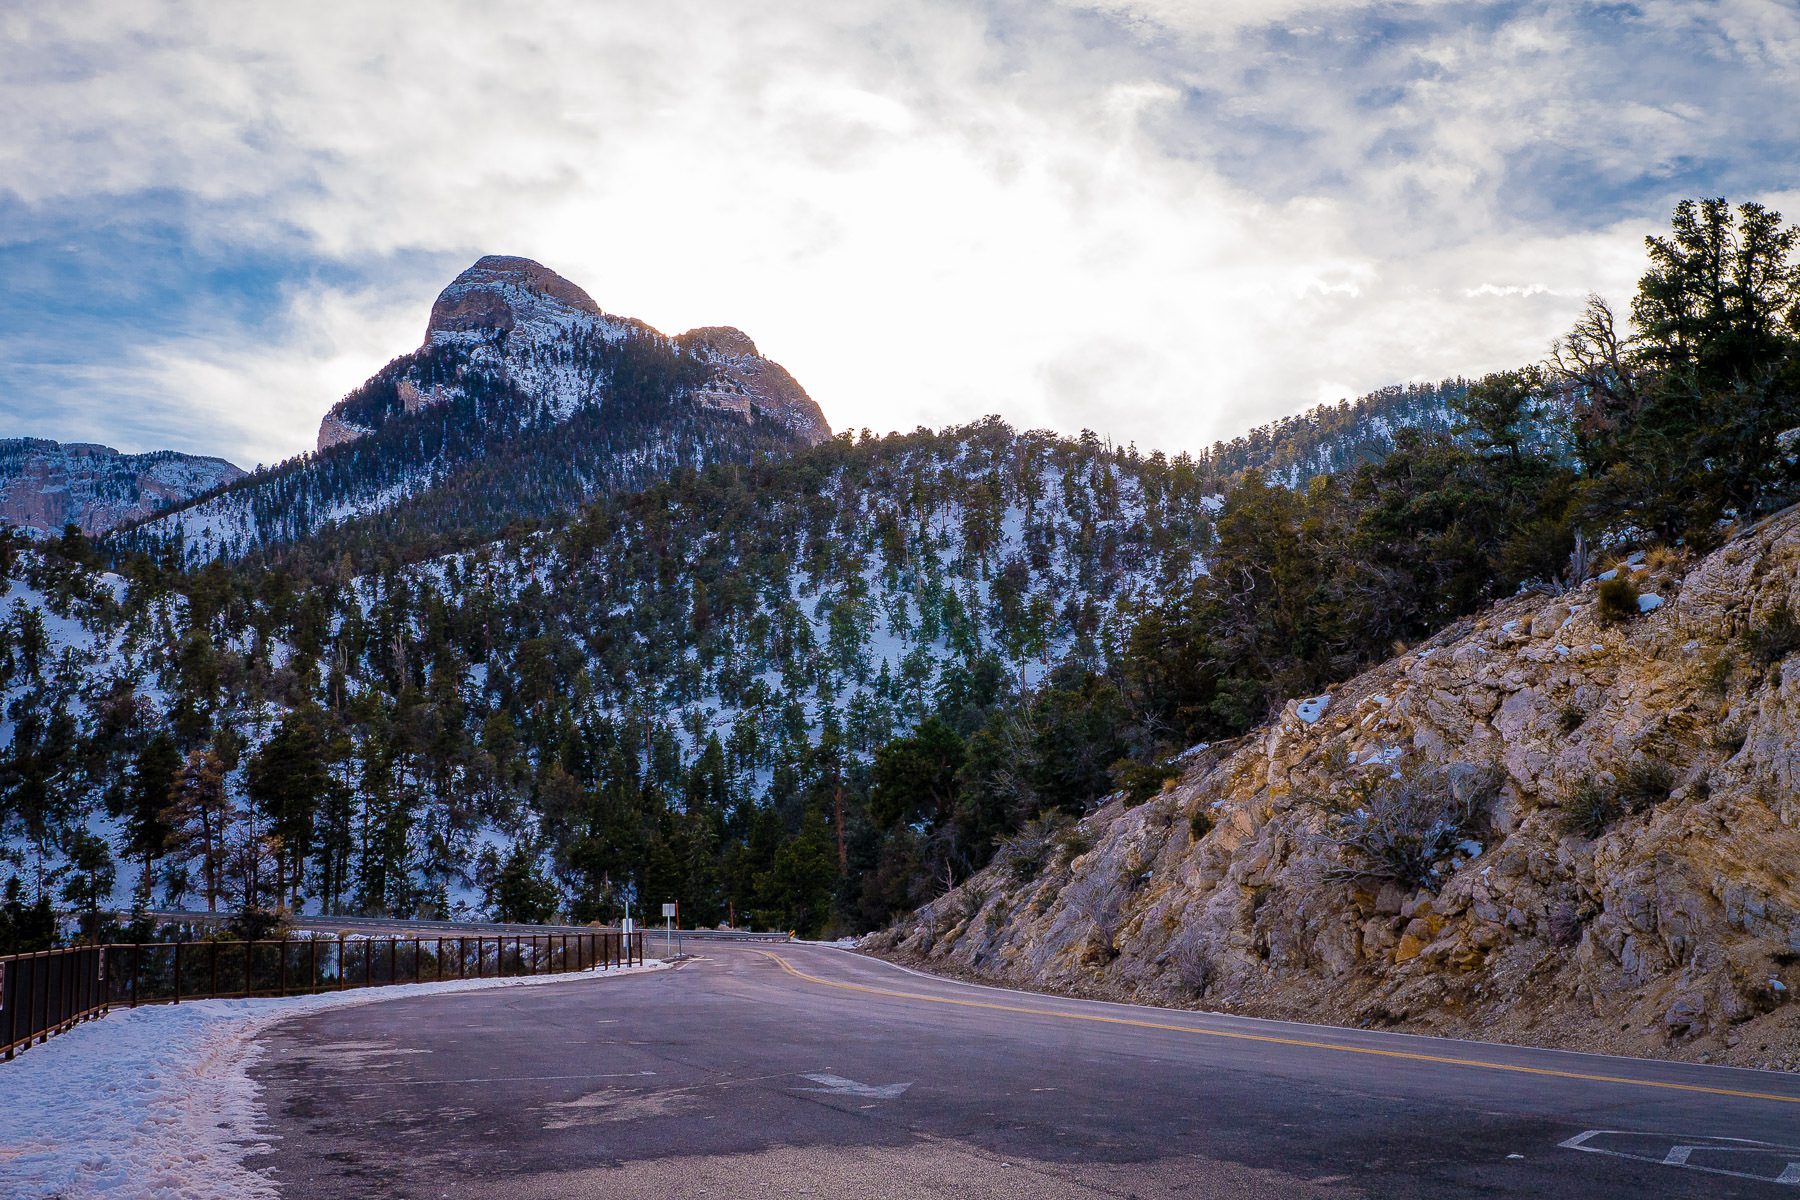 State Route 158 winds its way through snow-covered foothills as the sun begins to set behind Nevada's Mount Charleston.